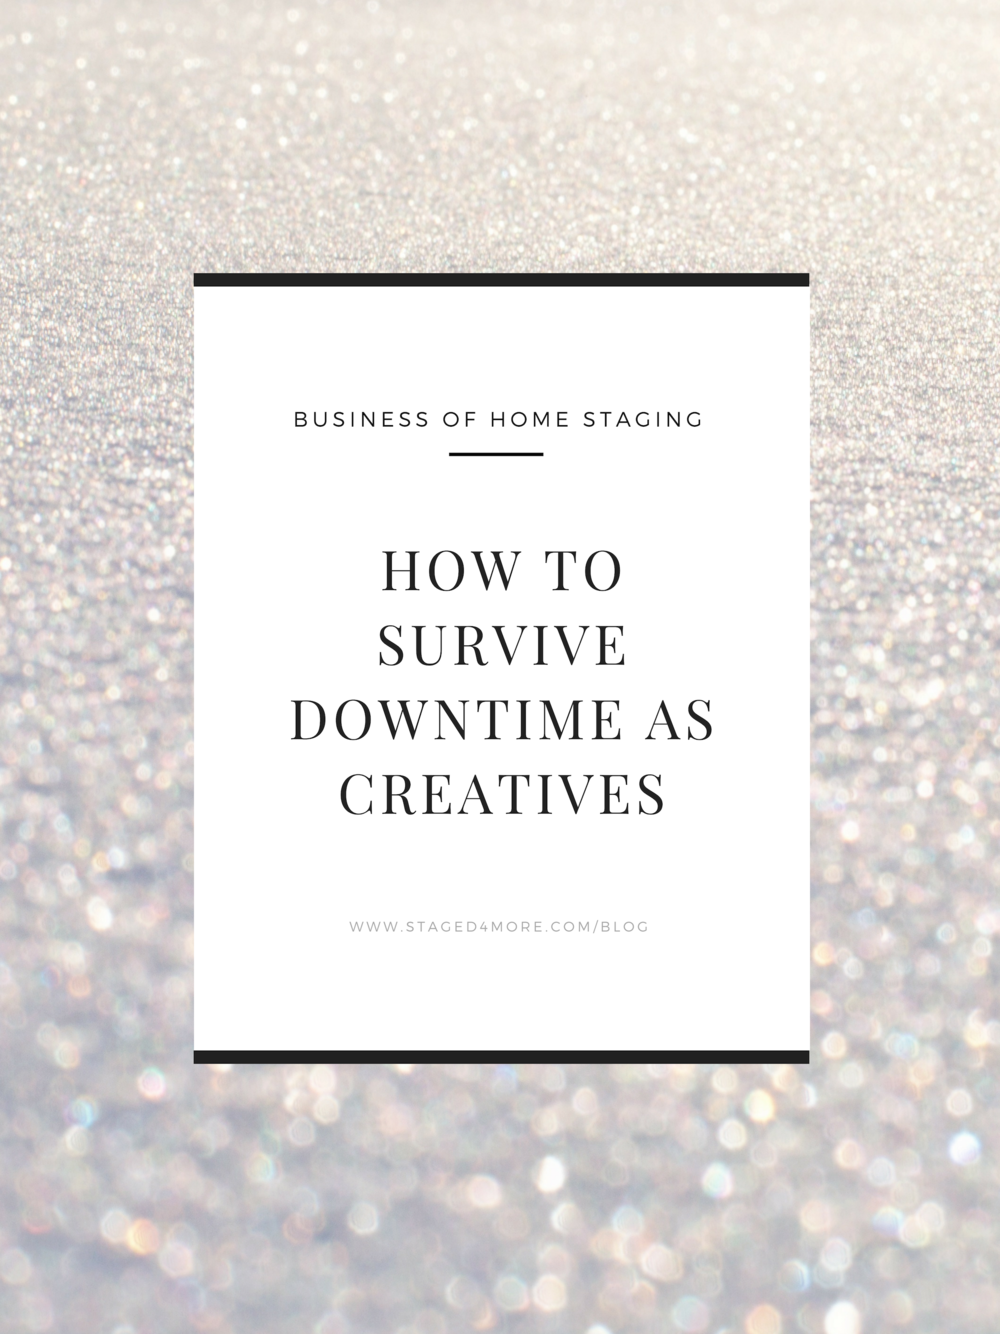 How to Survive During Downtime as Home Stagers | Staged4more School of Home Staging